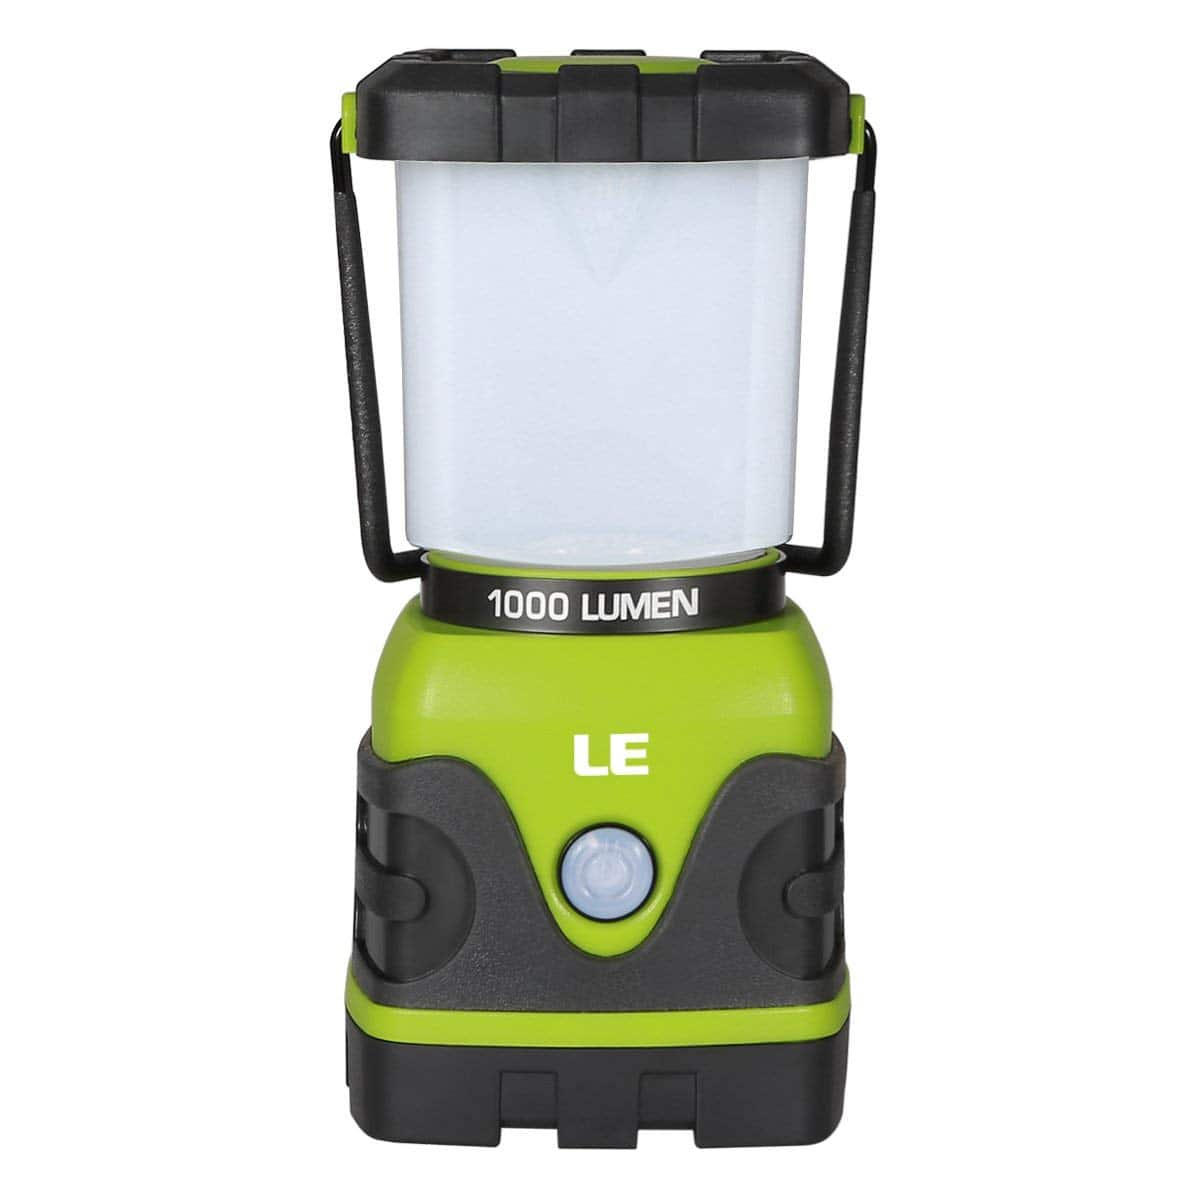 Le Portable Led Camping Lantern 1000lm Dimmable 4 Lighting Modes Battery Ed Tent Light For Home Garden Outdoor Hiking Fishing Emergency And